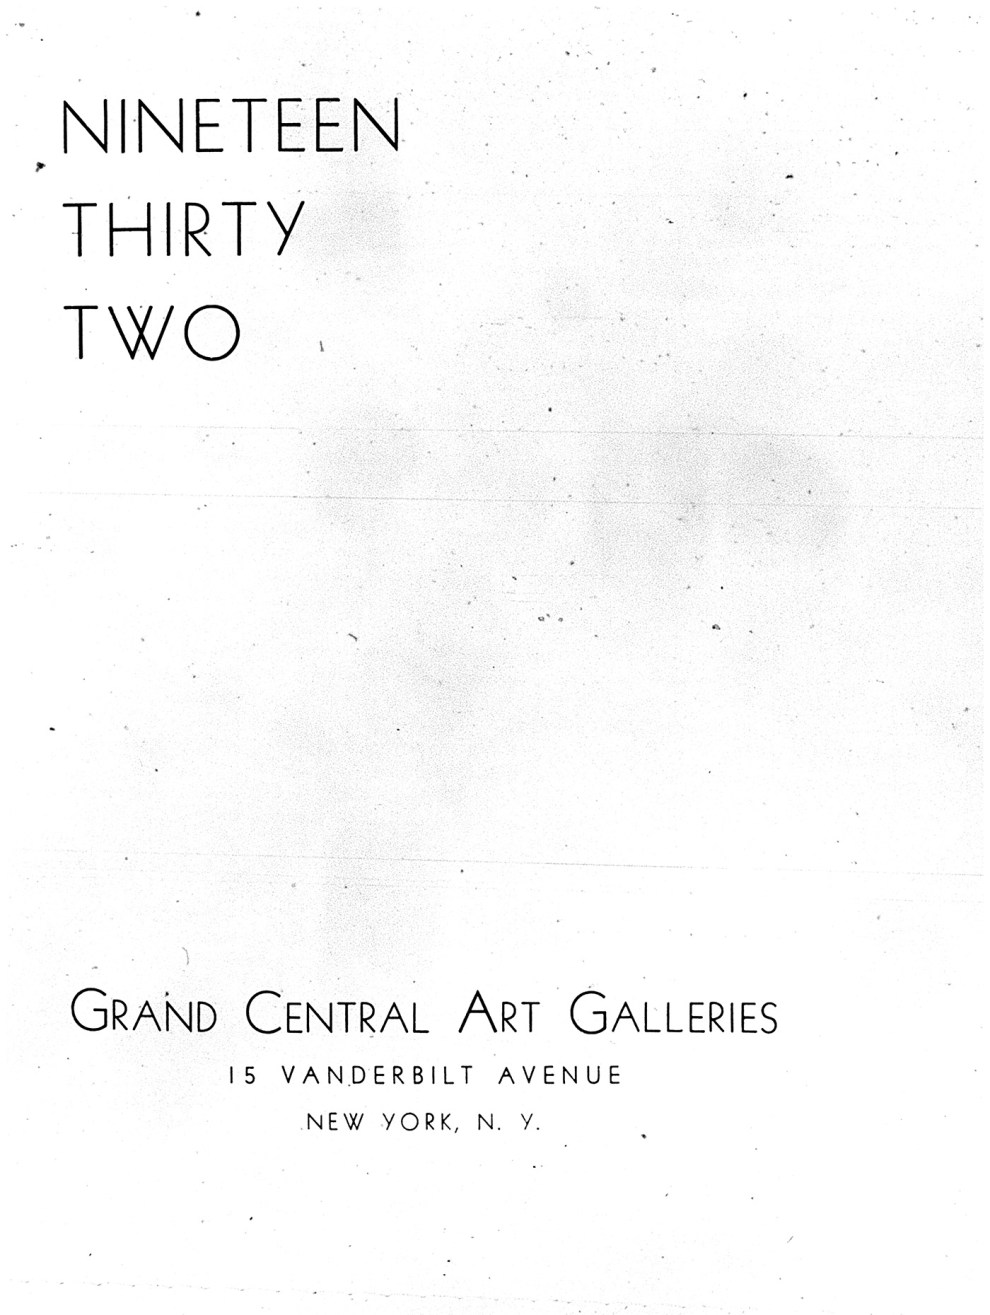 """Nineteen Thirty Two"" by Grand Central Art Galleries, New York, NY, 1932, illustrated: b&w"